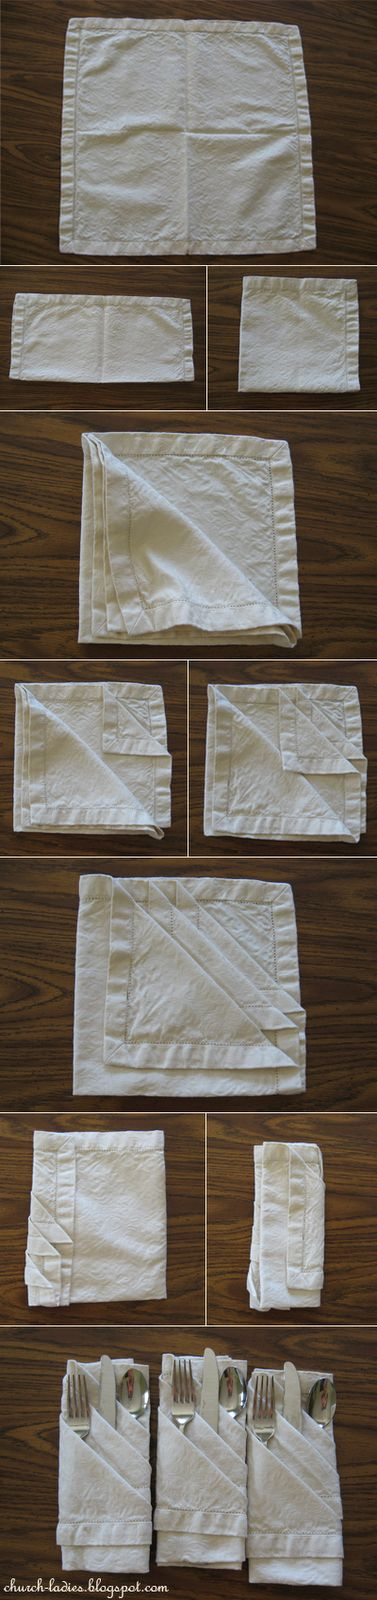 Napkin folding.: Napkins Folding, Ideas, Folding Napkins, Tables Sets, Napkin Folding, Dinners Parties, Places Sets, Napkin, Clothing Napkins